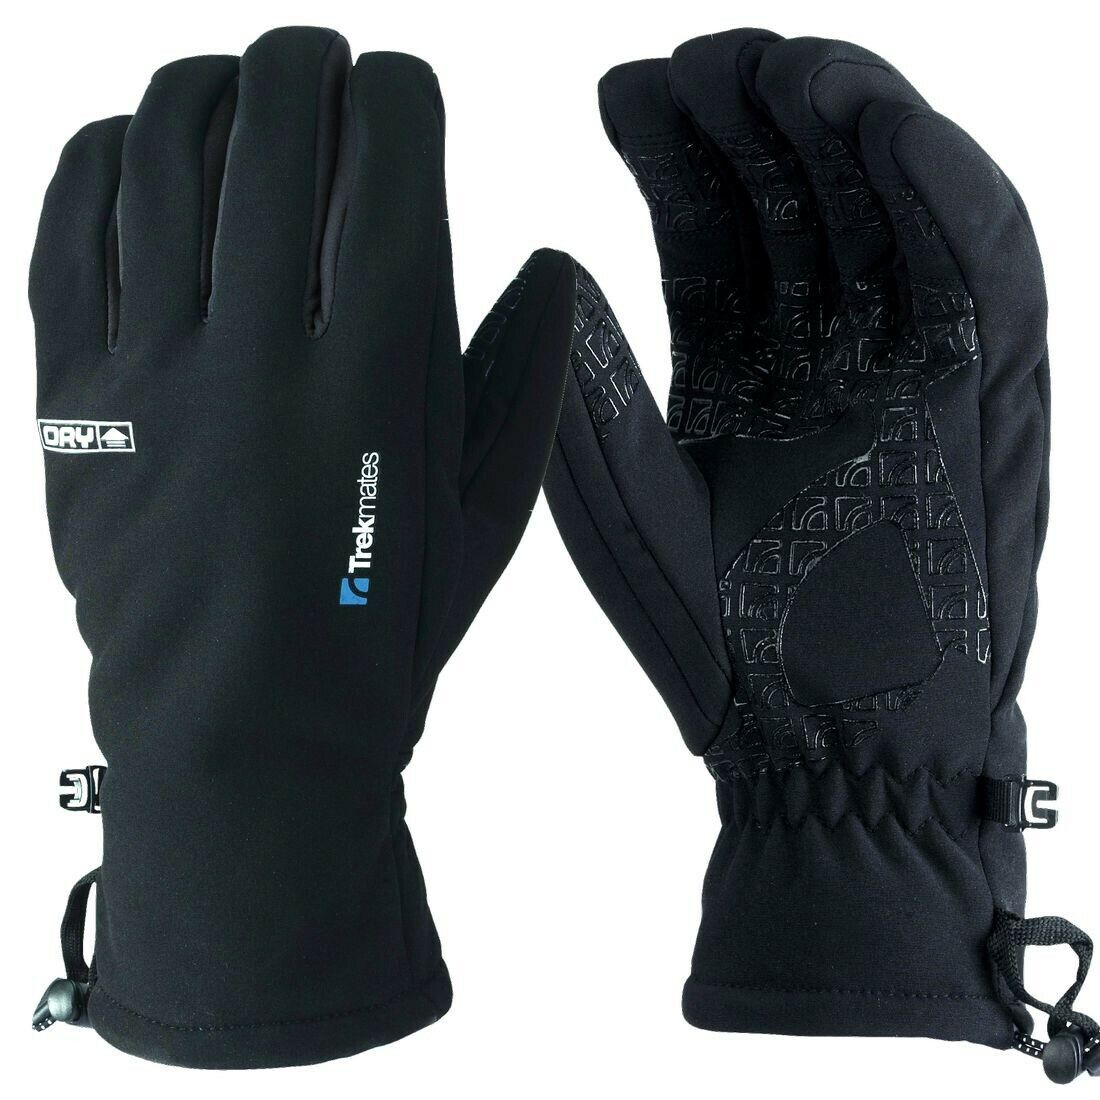 Trekmates Robinson Glove Men S - high-quality soft shell finger gloves with DRY